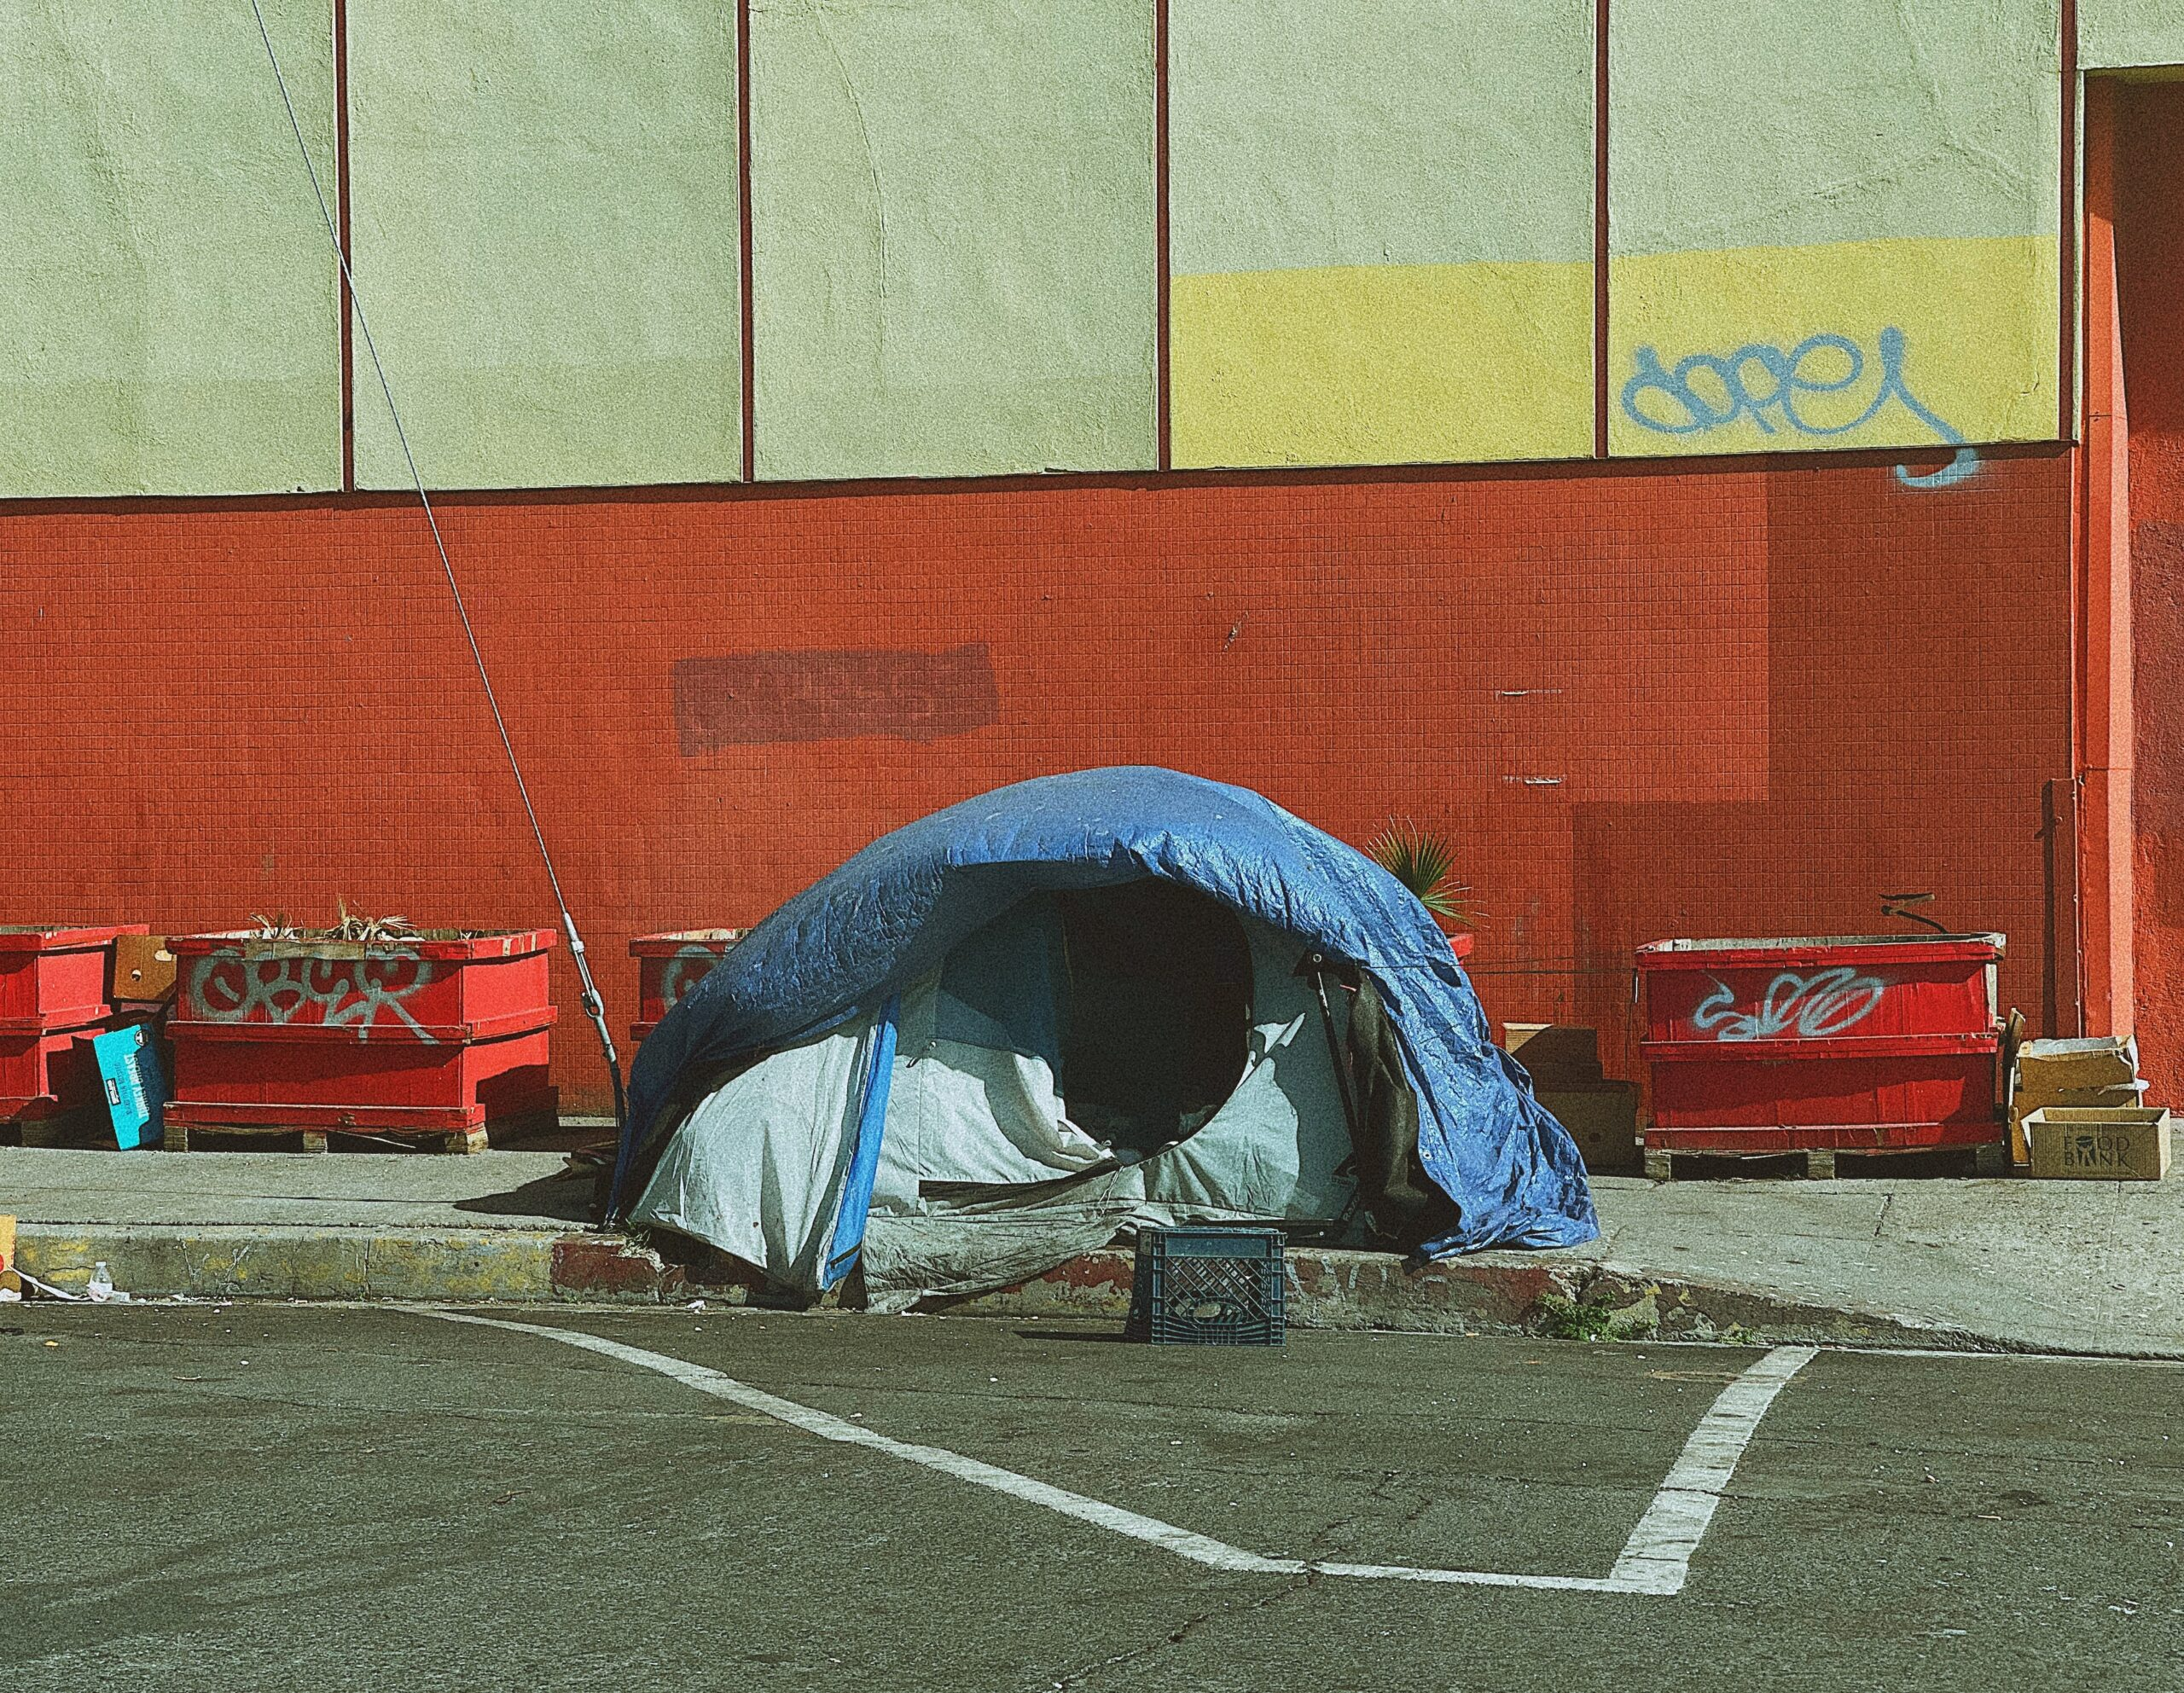 A camping tent set up on the sidewalk, photo by Naomi August on Unsplash